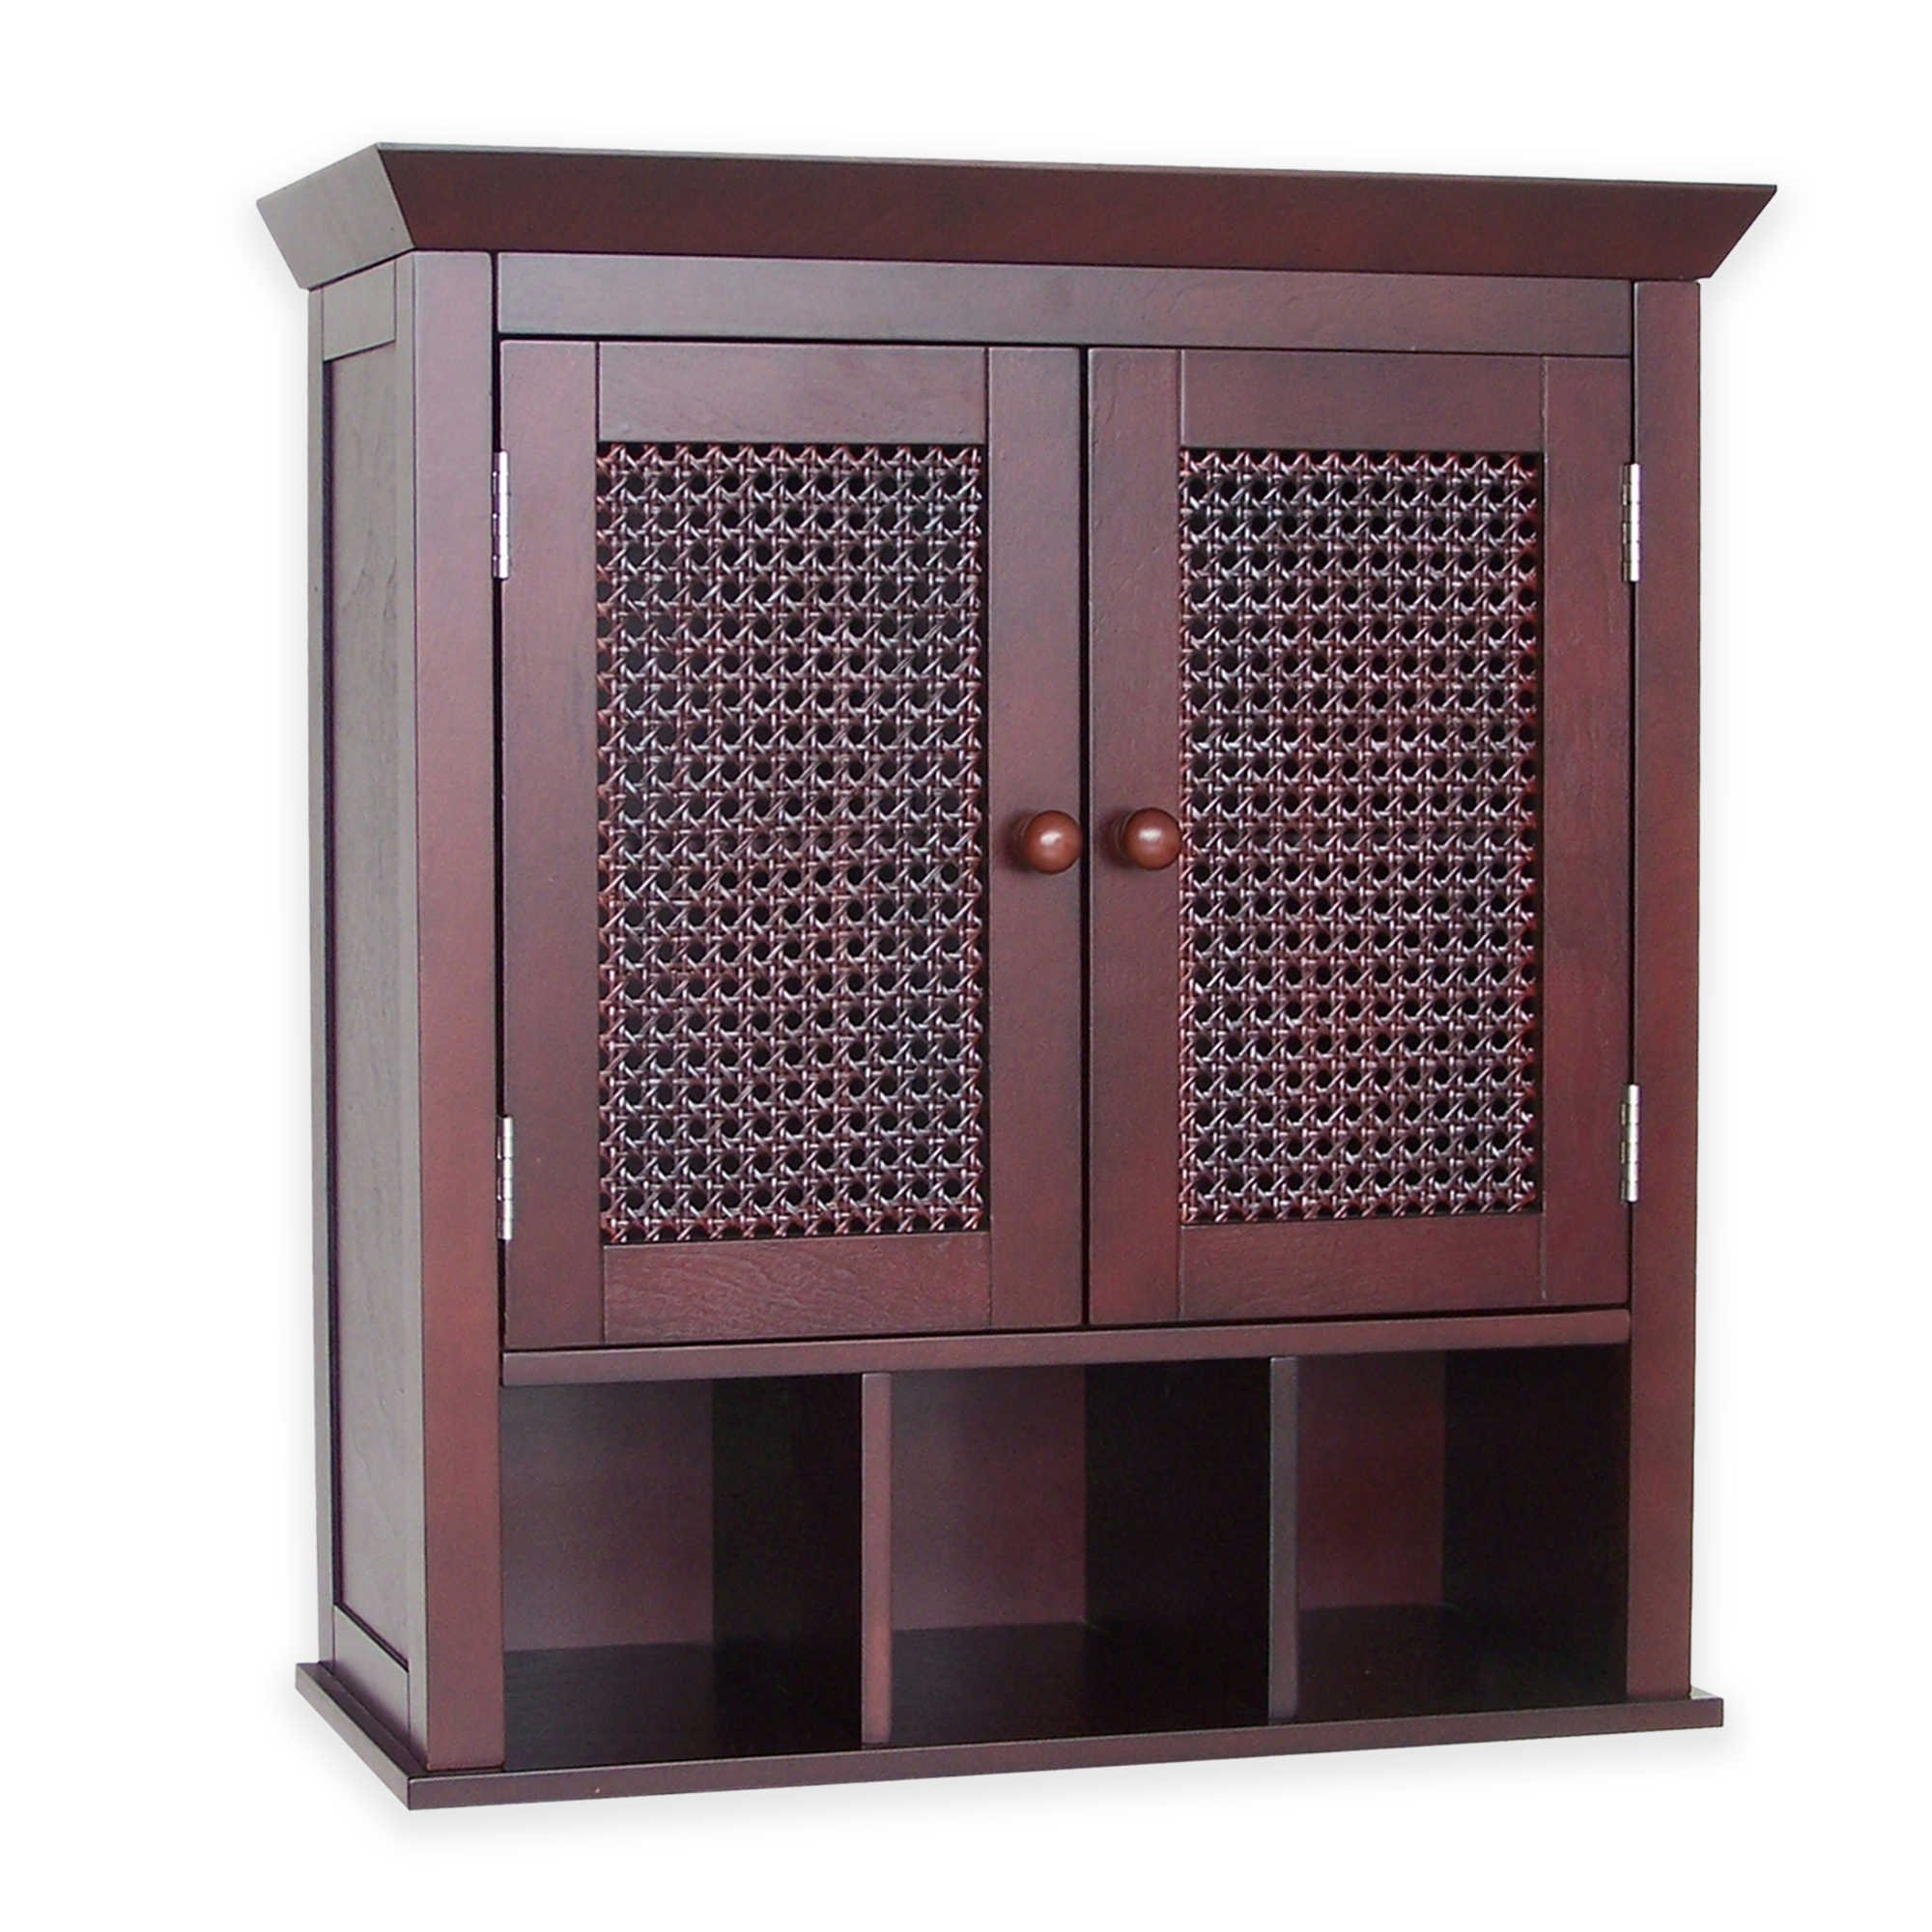 Elegant Home Fashions Collection Classic Design 2-Door Wall Cabinet Cabinet, Brown Finish